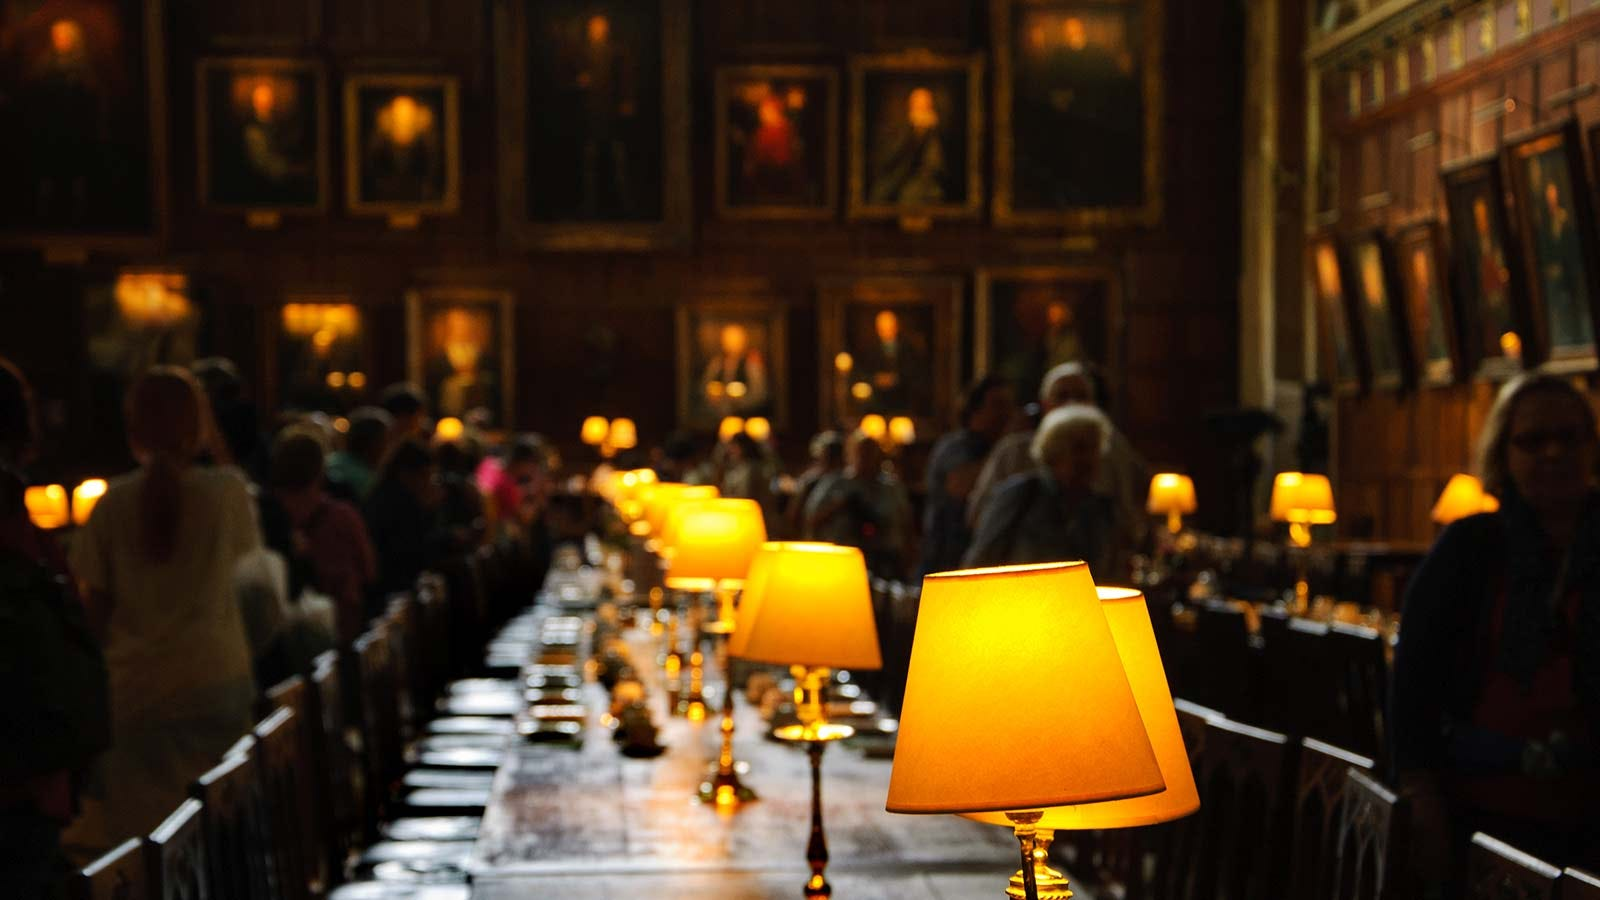 Great Dining Hall at the University of Oxford